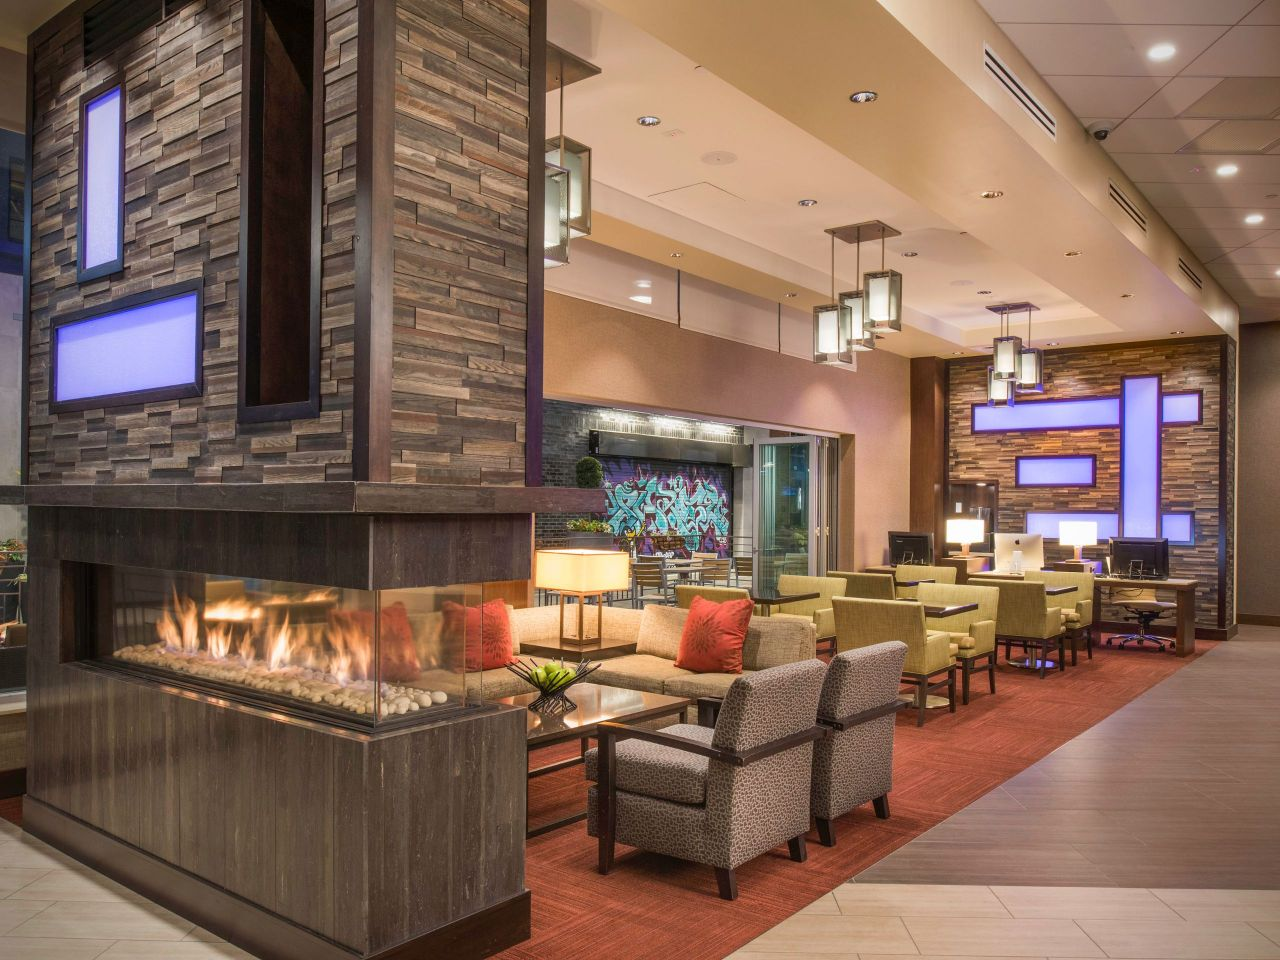 Lobby Seating Fireplace